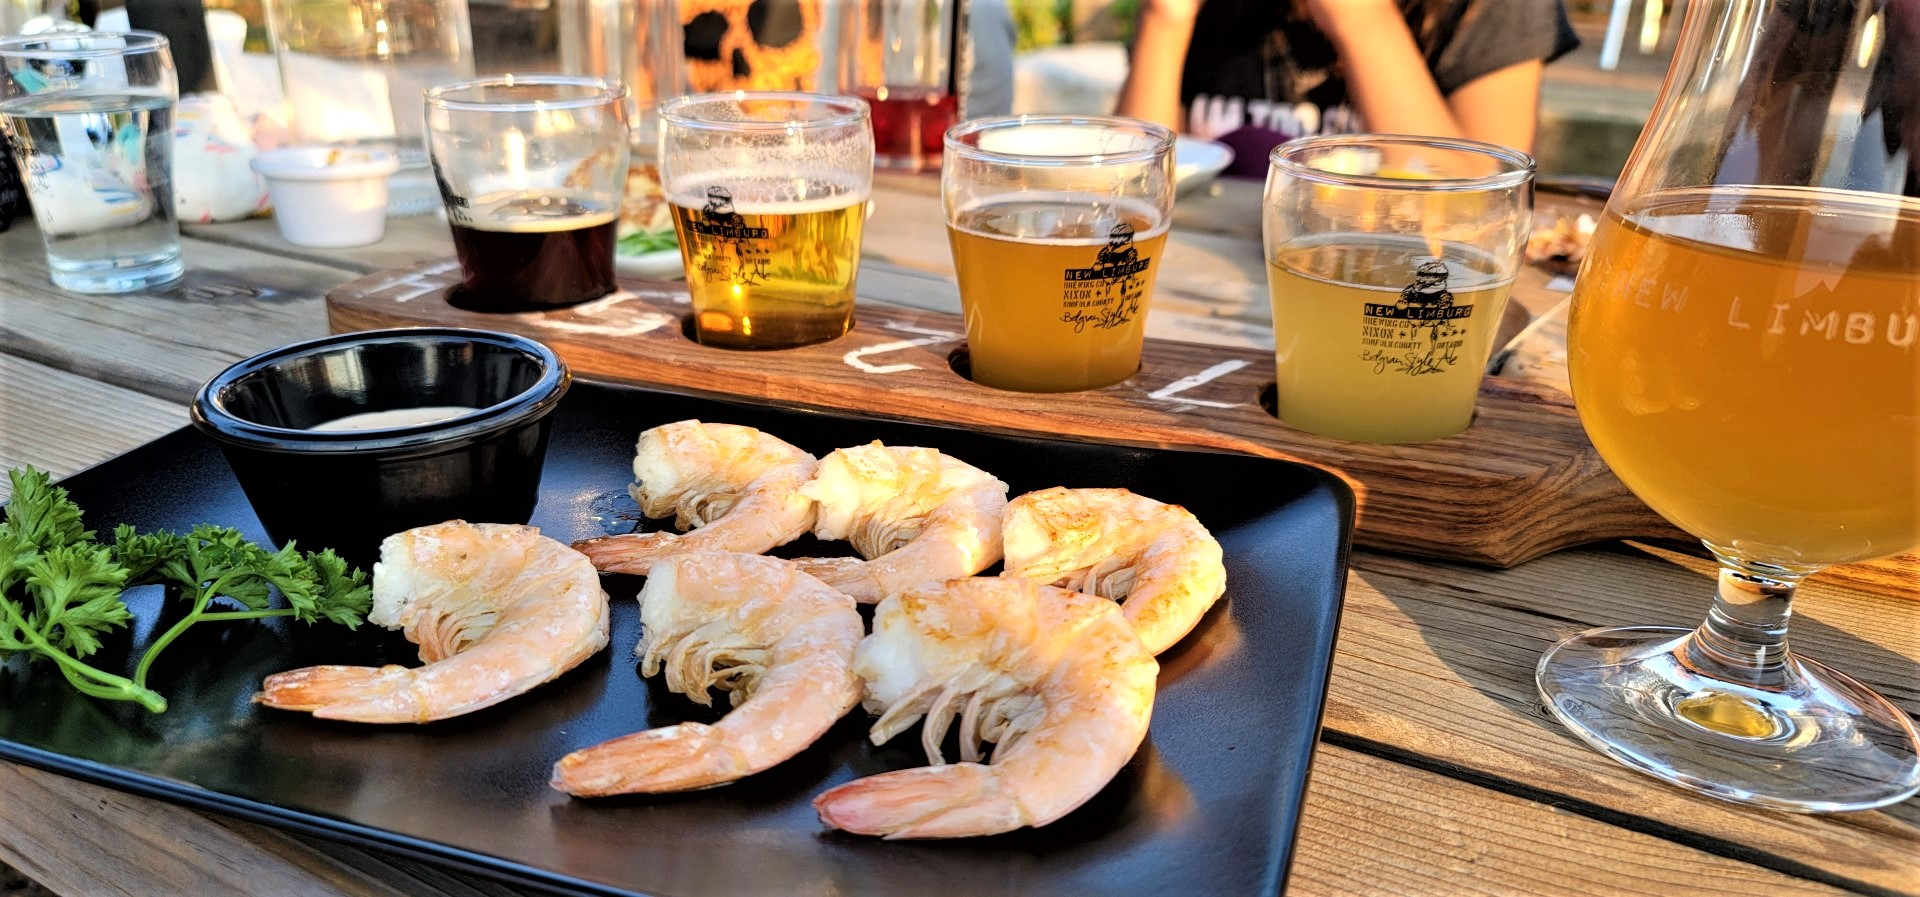 Grilled shrimp and beer flight on table